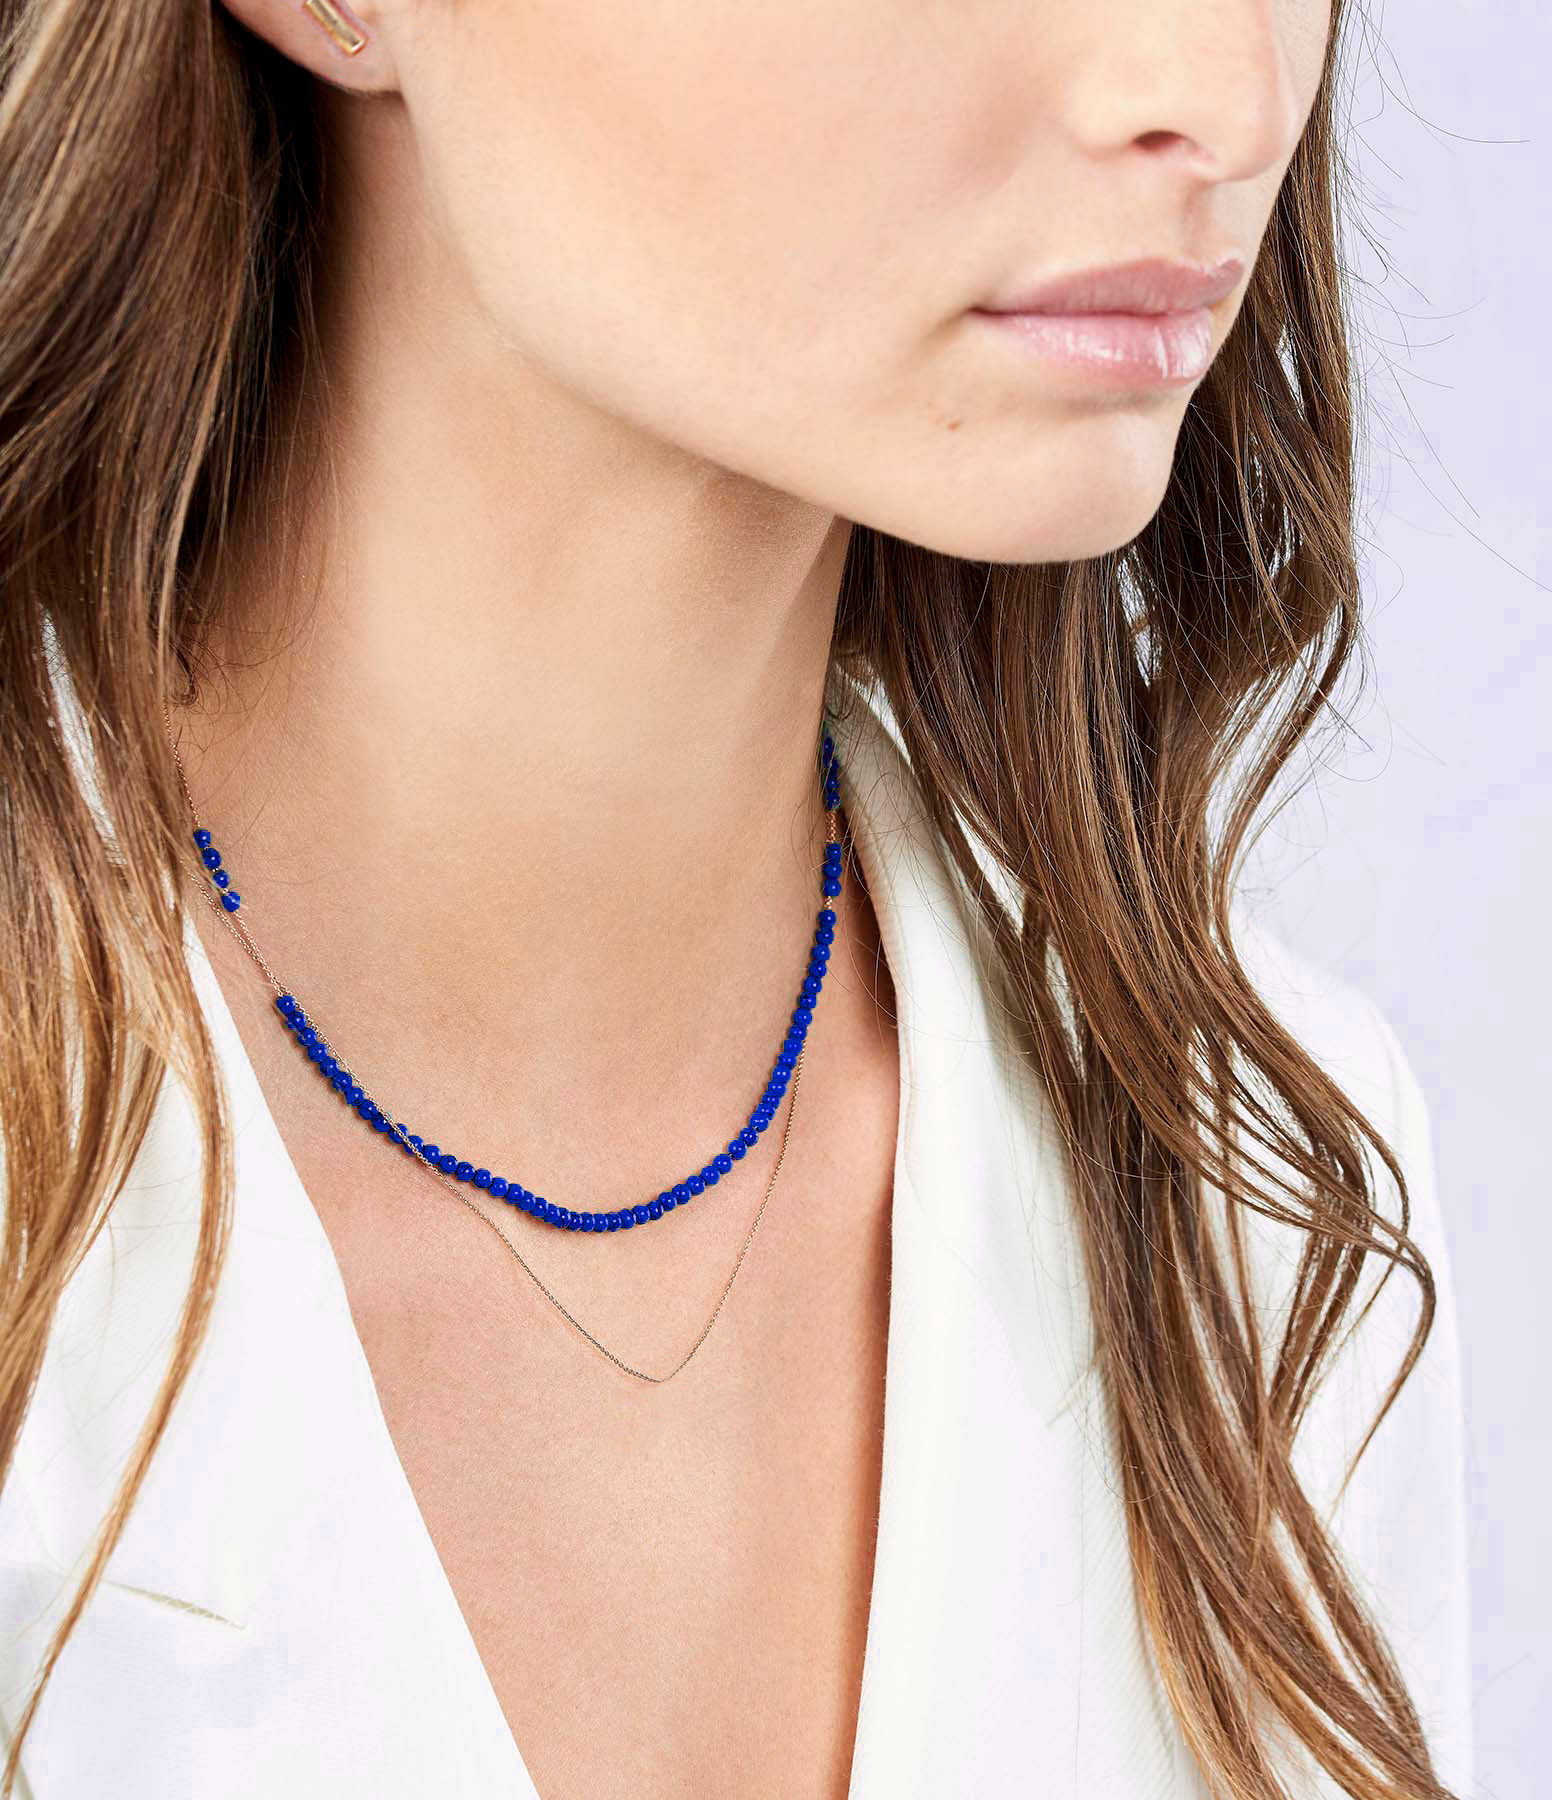 GINETTE NY - Collier Maria Mini Boulier Or Rose Lapis Lazuli